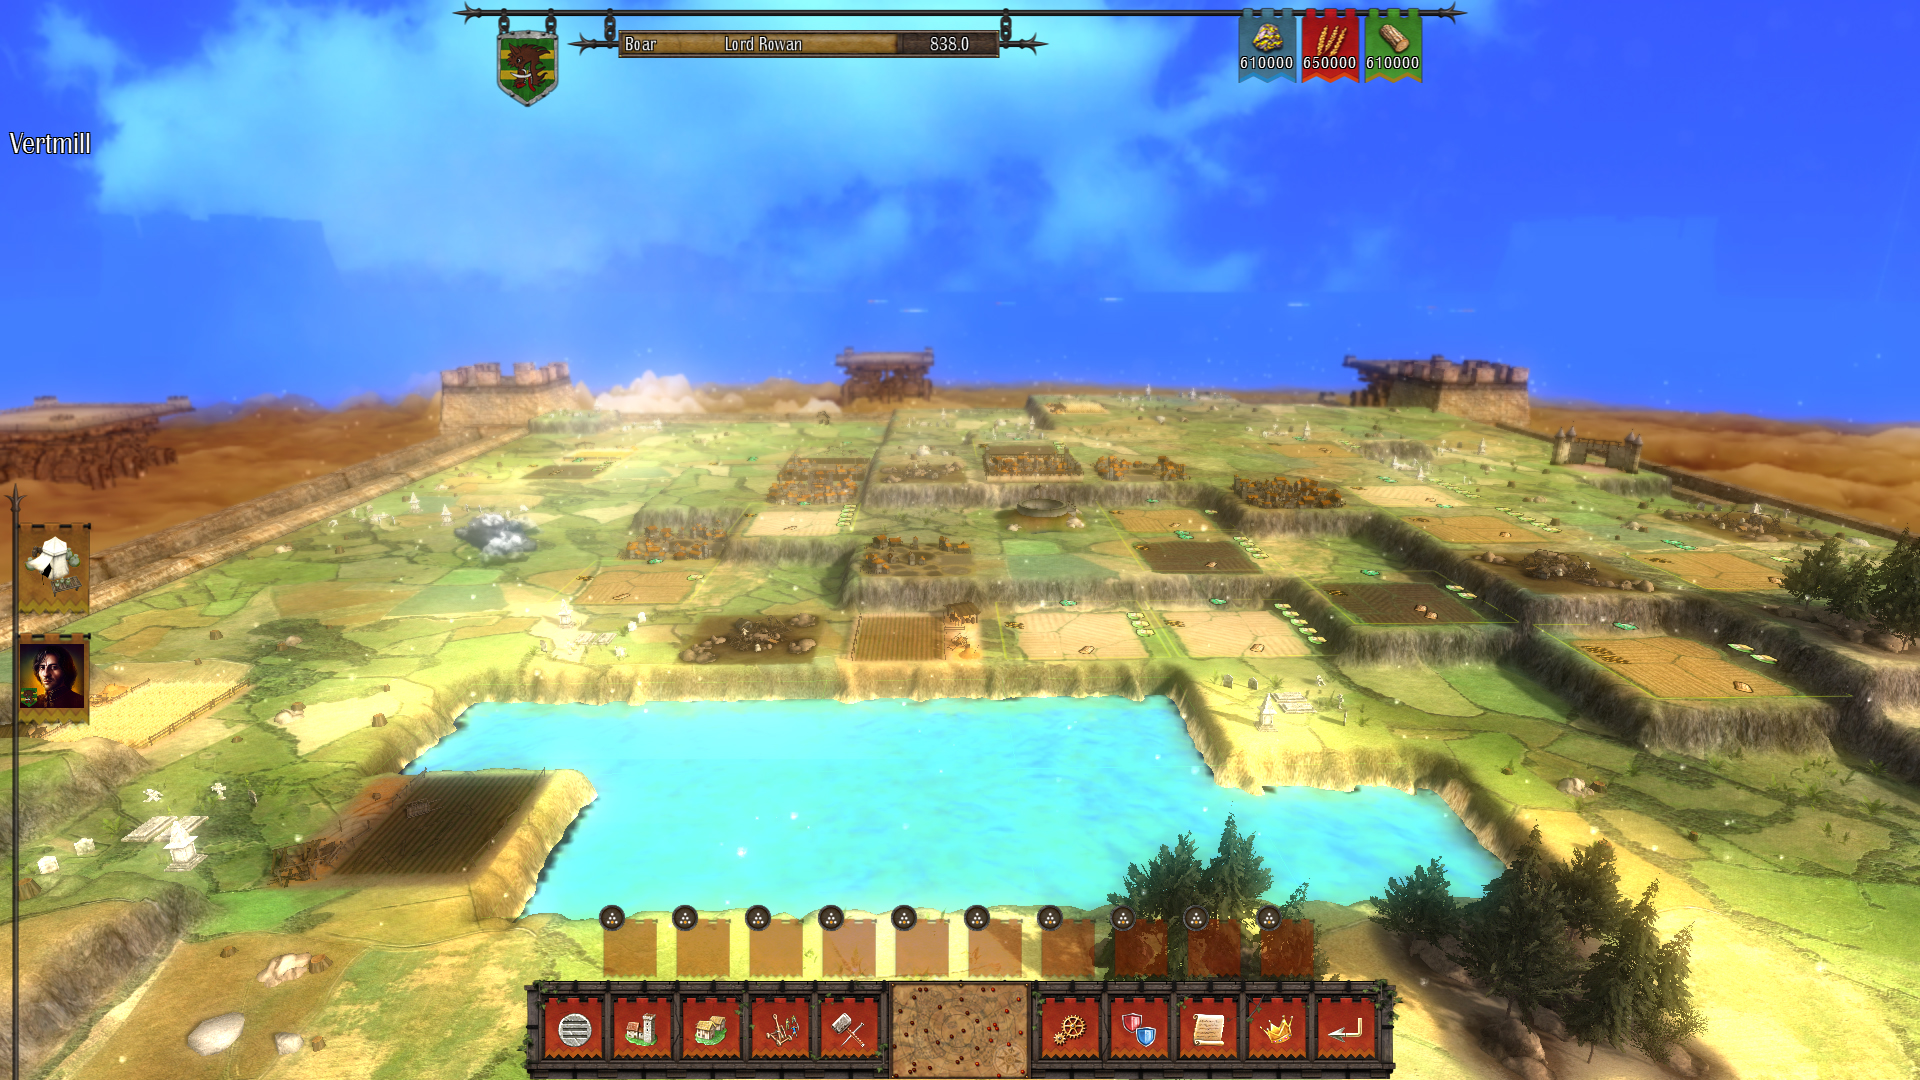 FUNNY FLASH GAMES - play free online games on internet Free pictures of feudalism